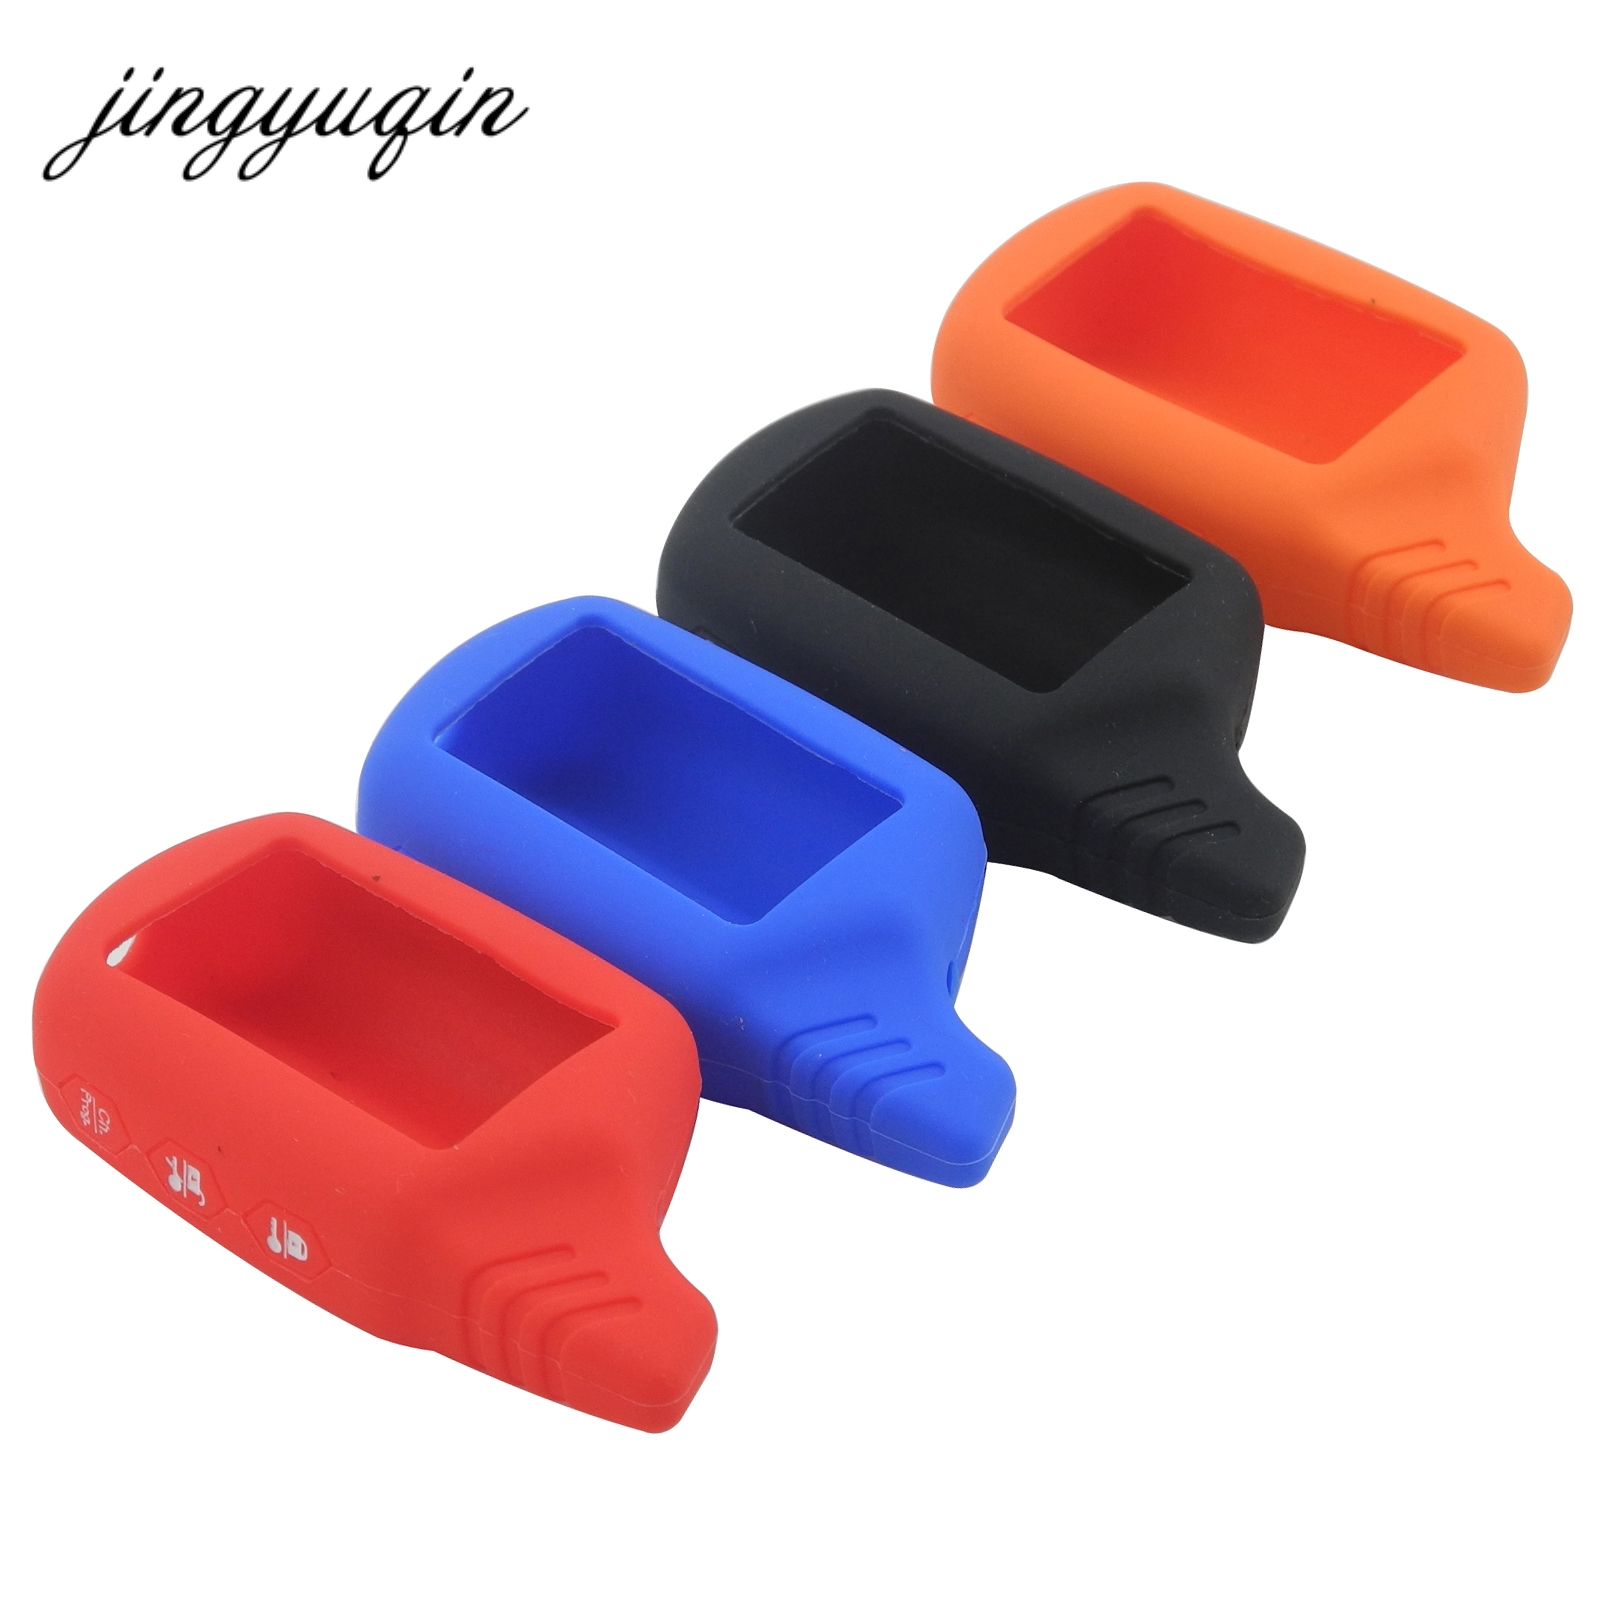 jingyuqin Key Cover B9/B6 Silicone Case for Starline B91/B61/A91/A61 KGB FX-5 Jaguar ez-one LCD Keychain Car Remote 2 Way Alarmjingyuqin Key Cover B9/B6 Silicone Case for Starline B91/B61/A91/A61 KGB FX-5 Jaguar ez-one LCD Keychain Car Remote 2 Way Alarm